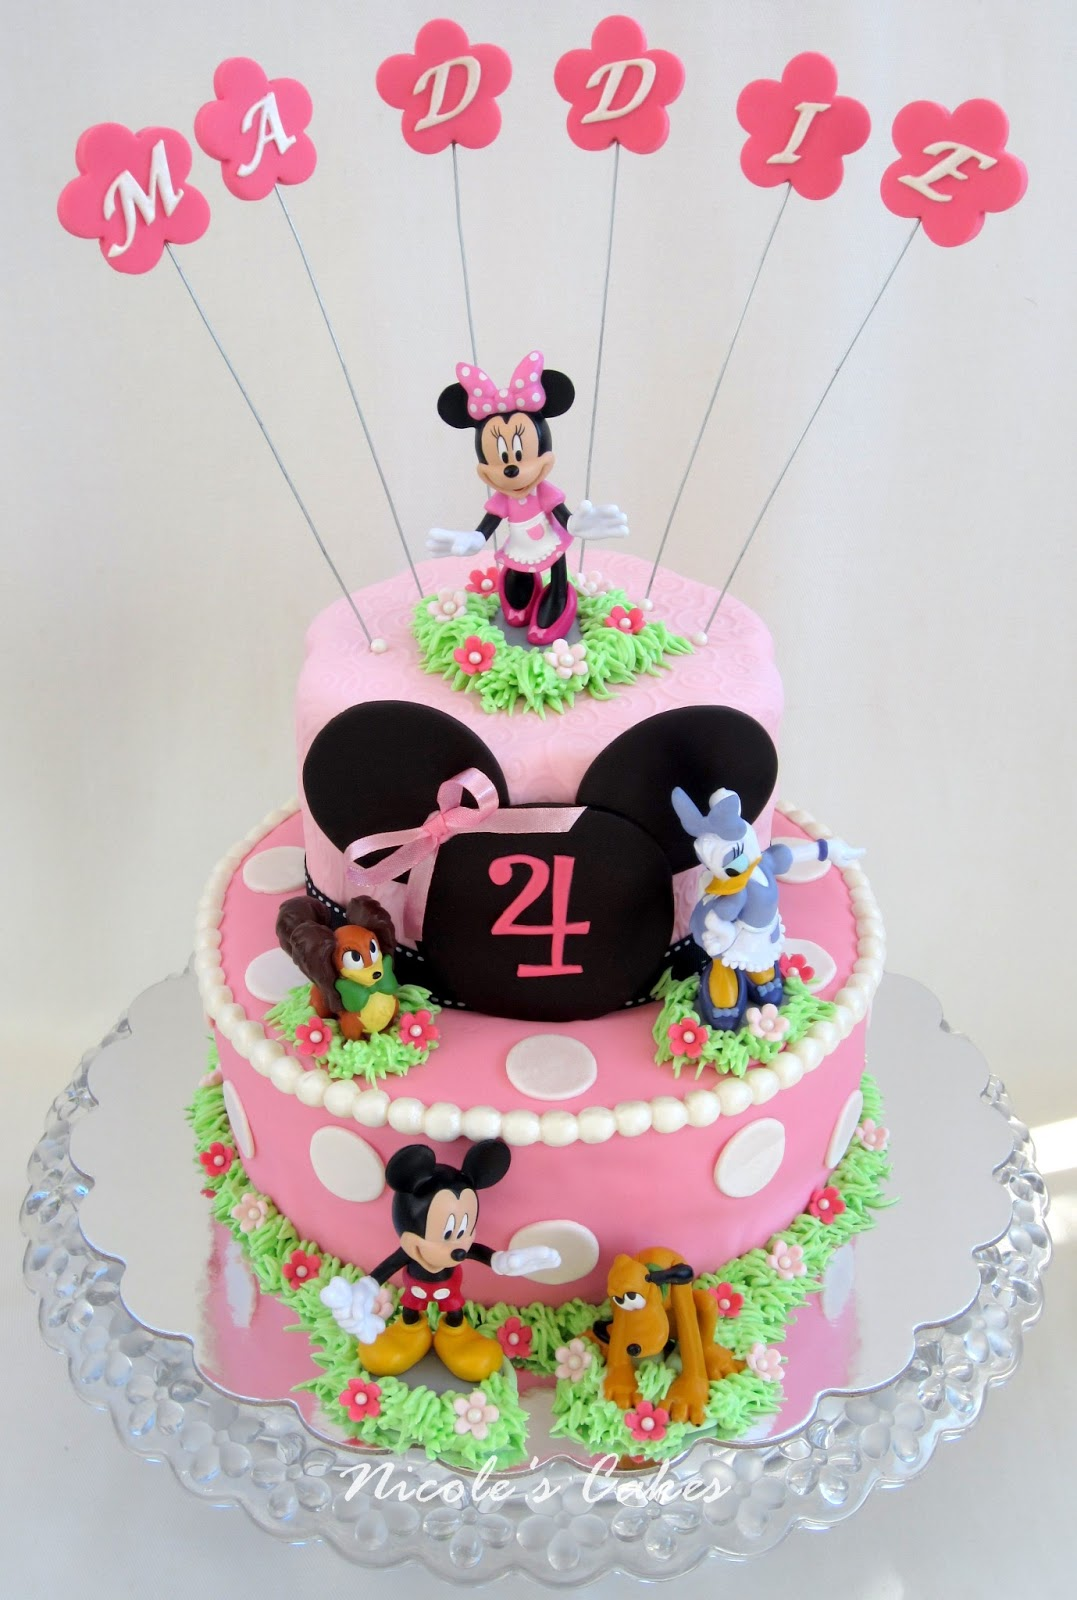 Confections Cakes Amp Creations Minnie Amp Friends Cake